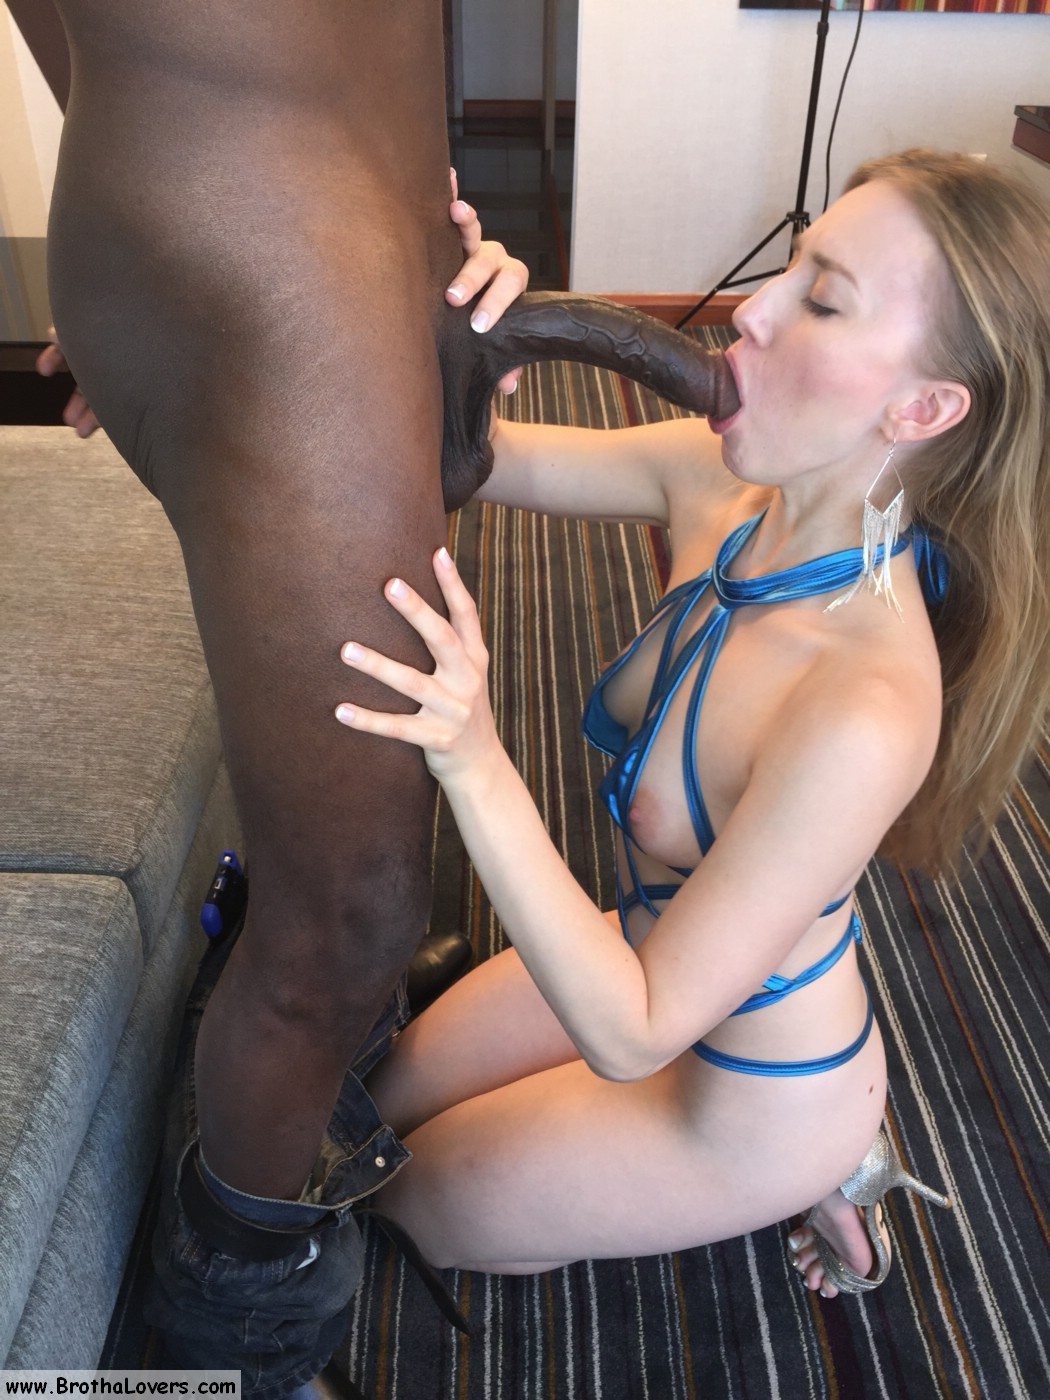 Anal Interracial Extreme Teen